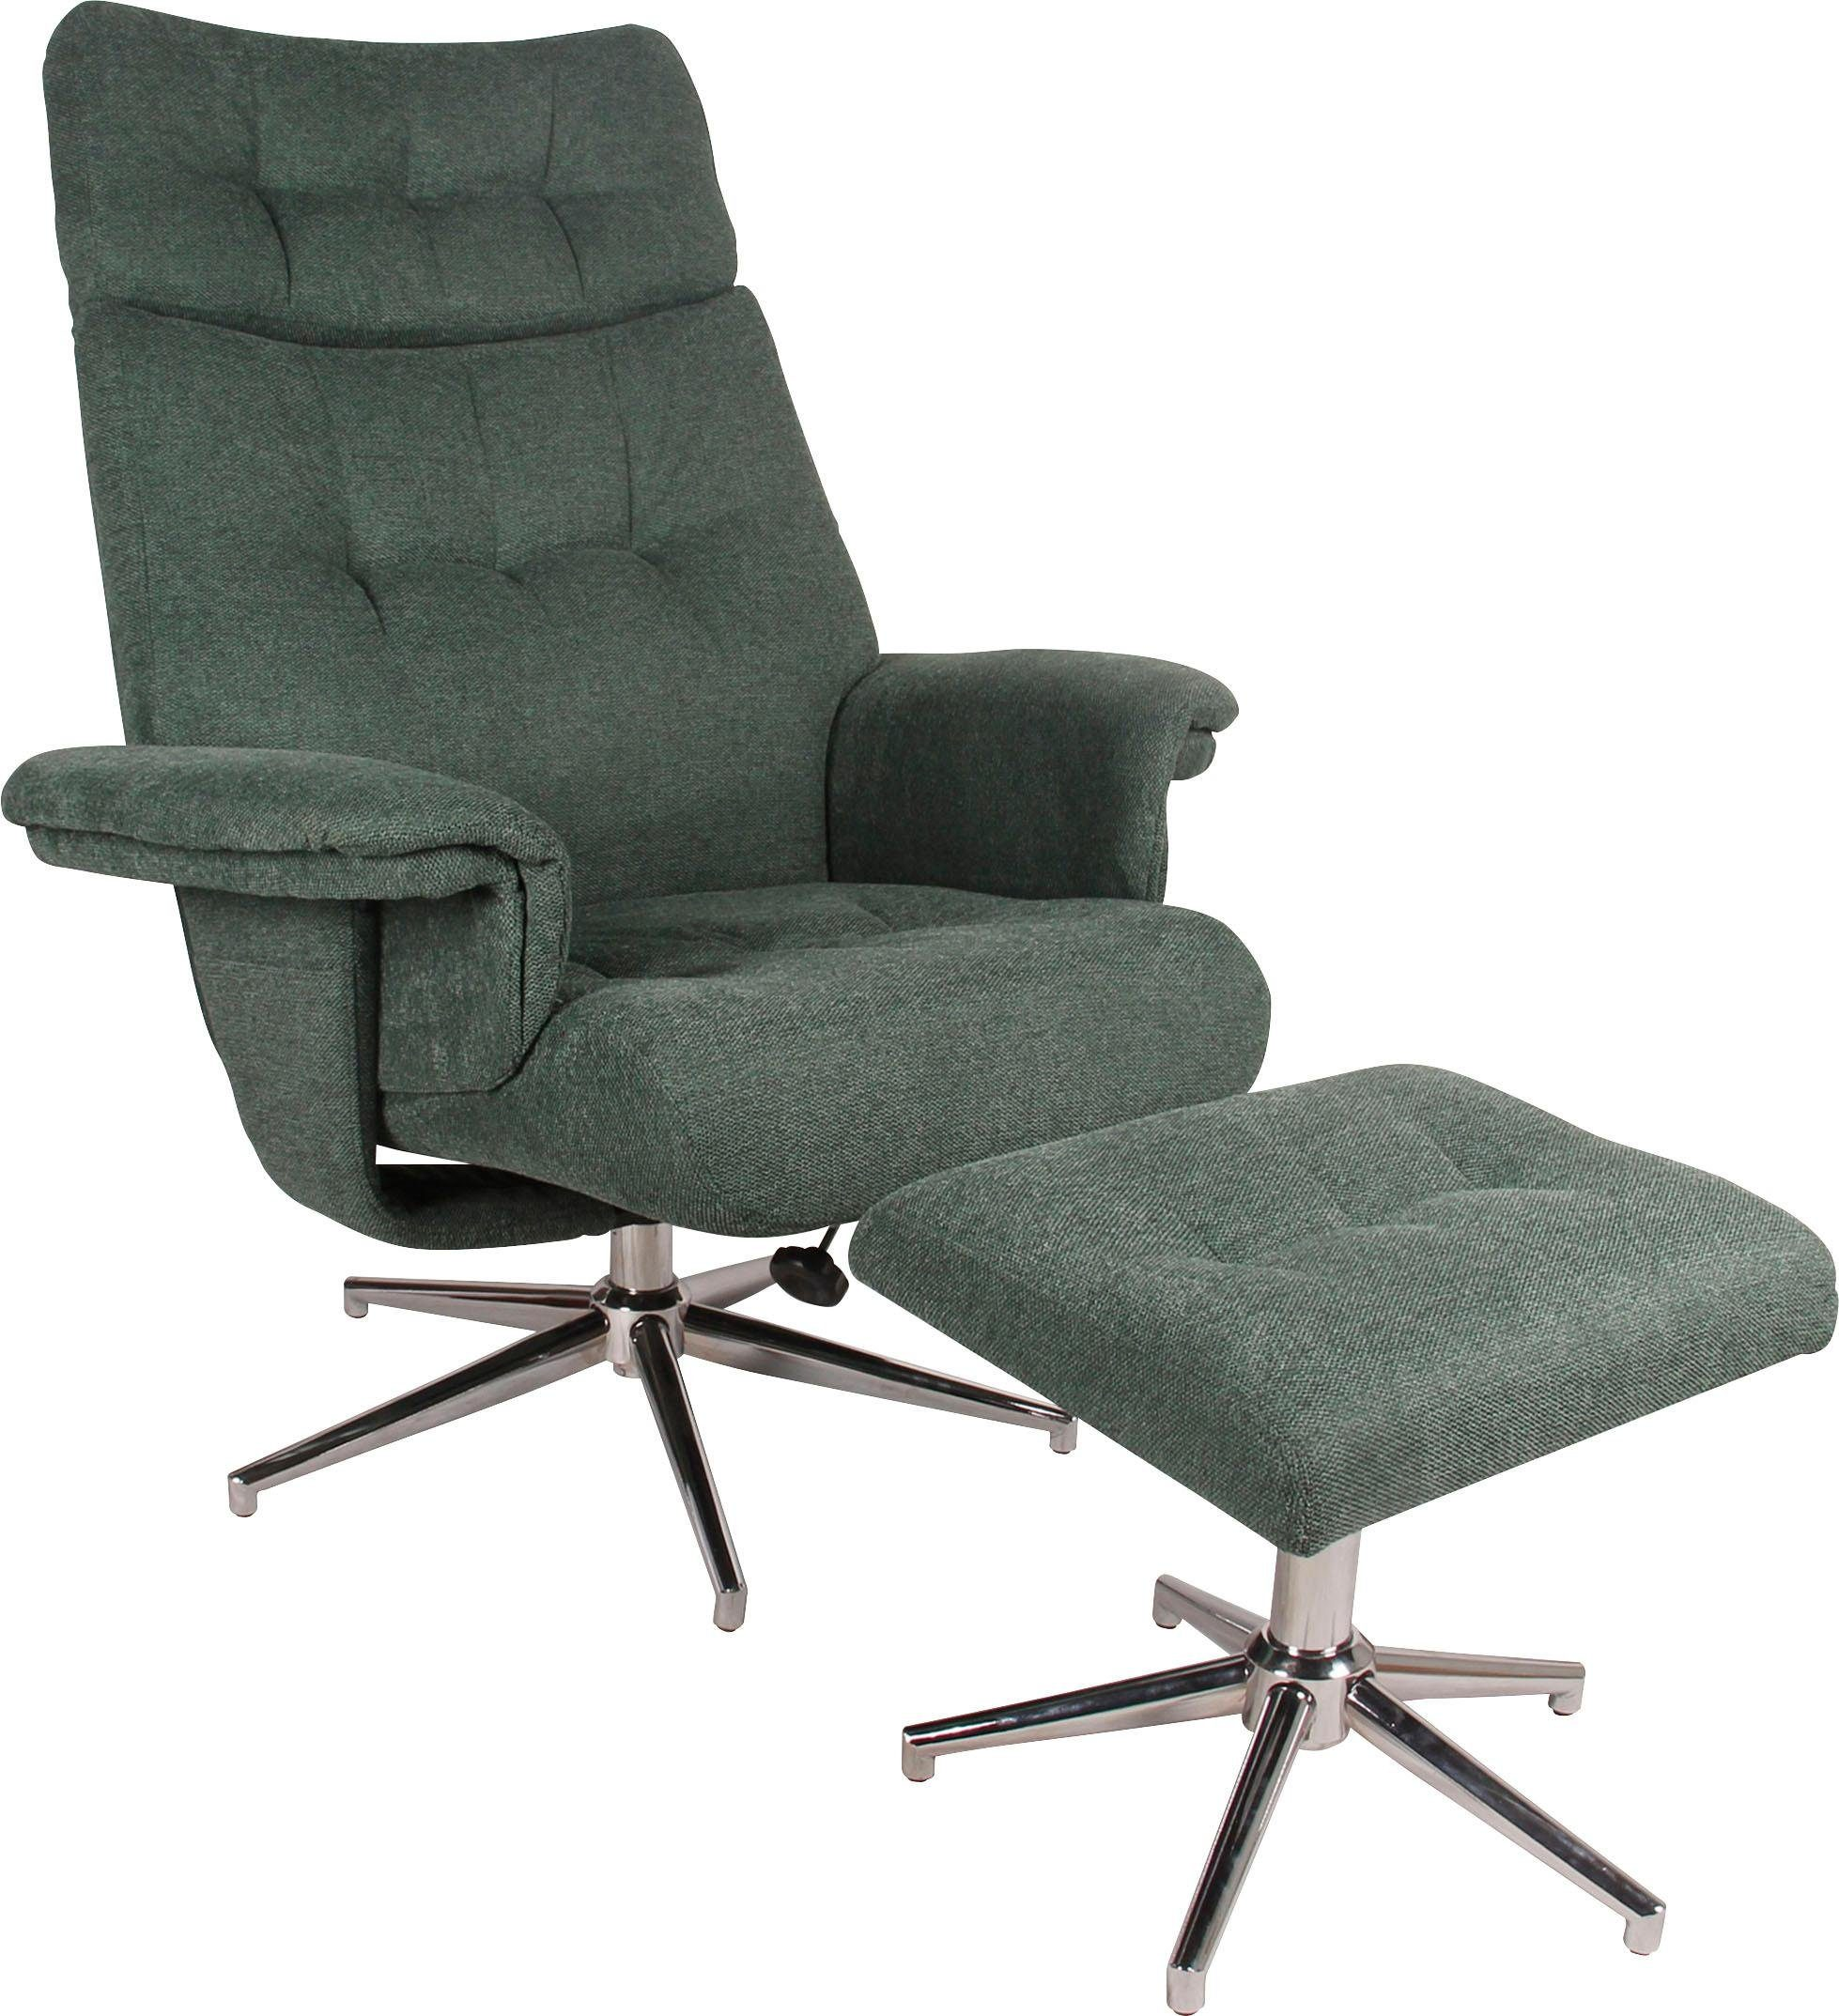 Duo Collection Relaxsessel Peers